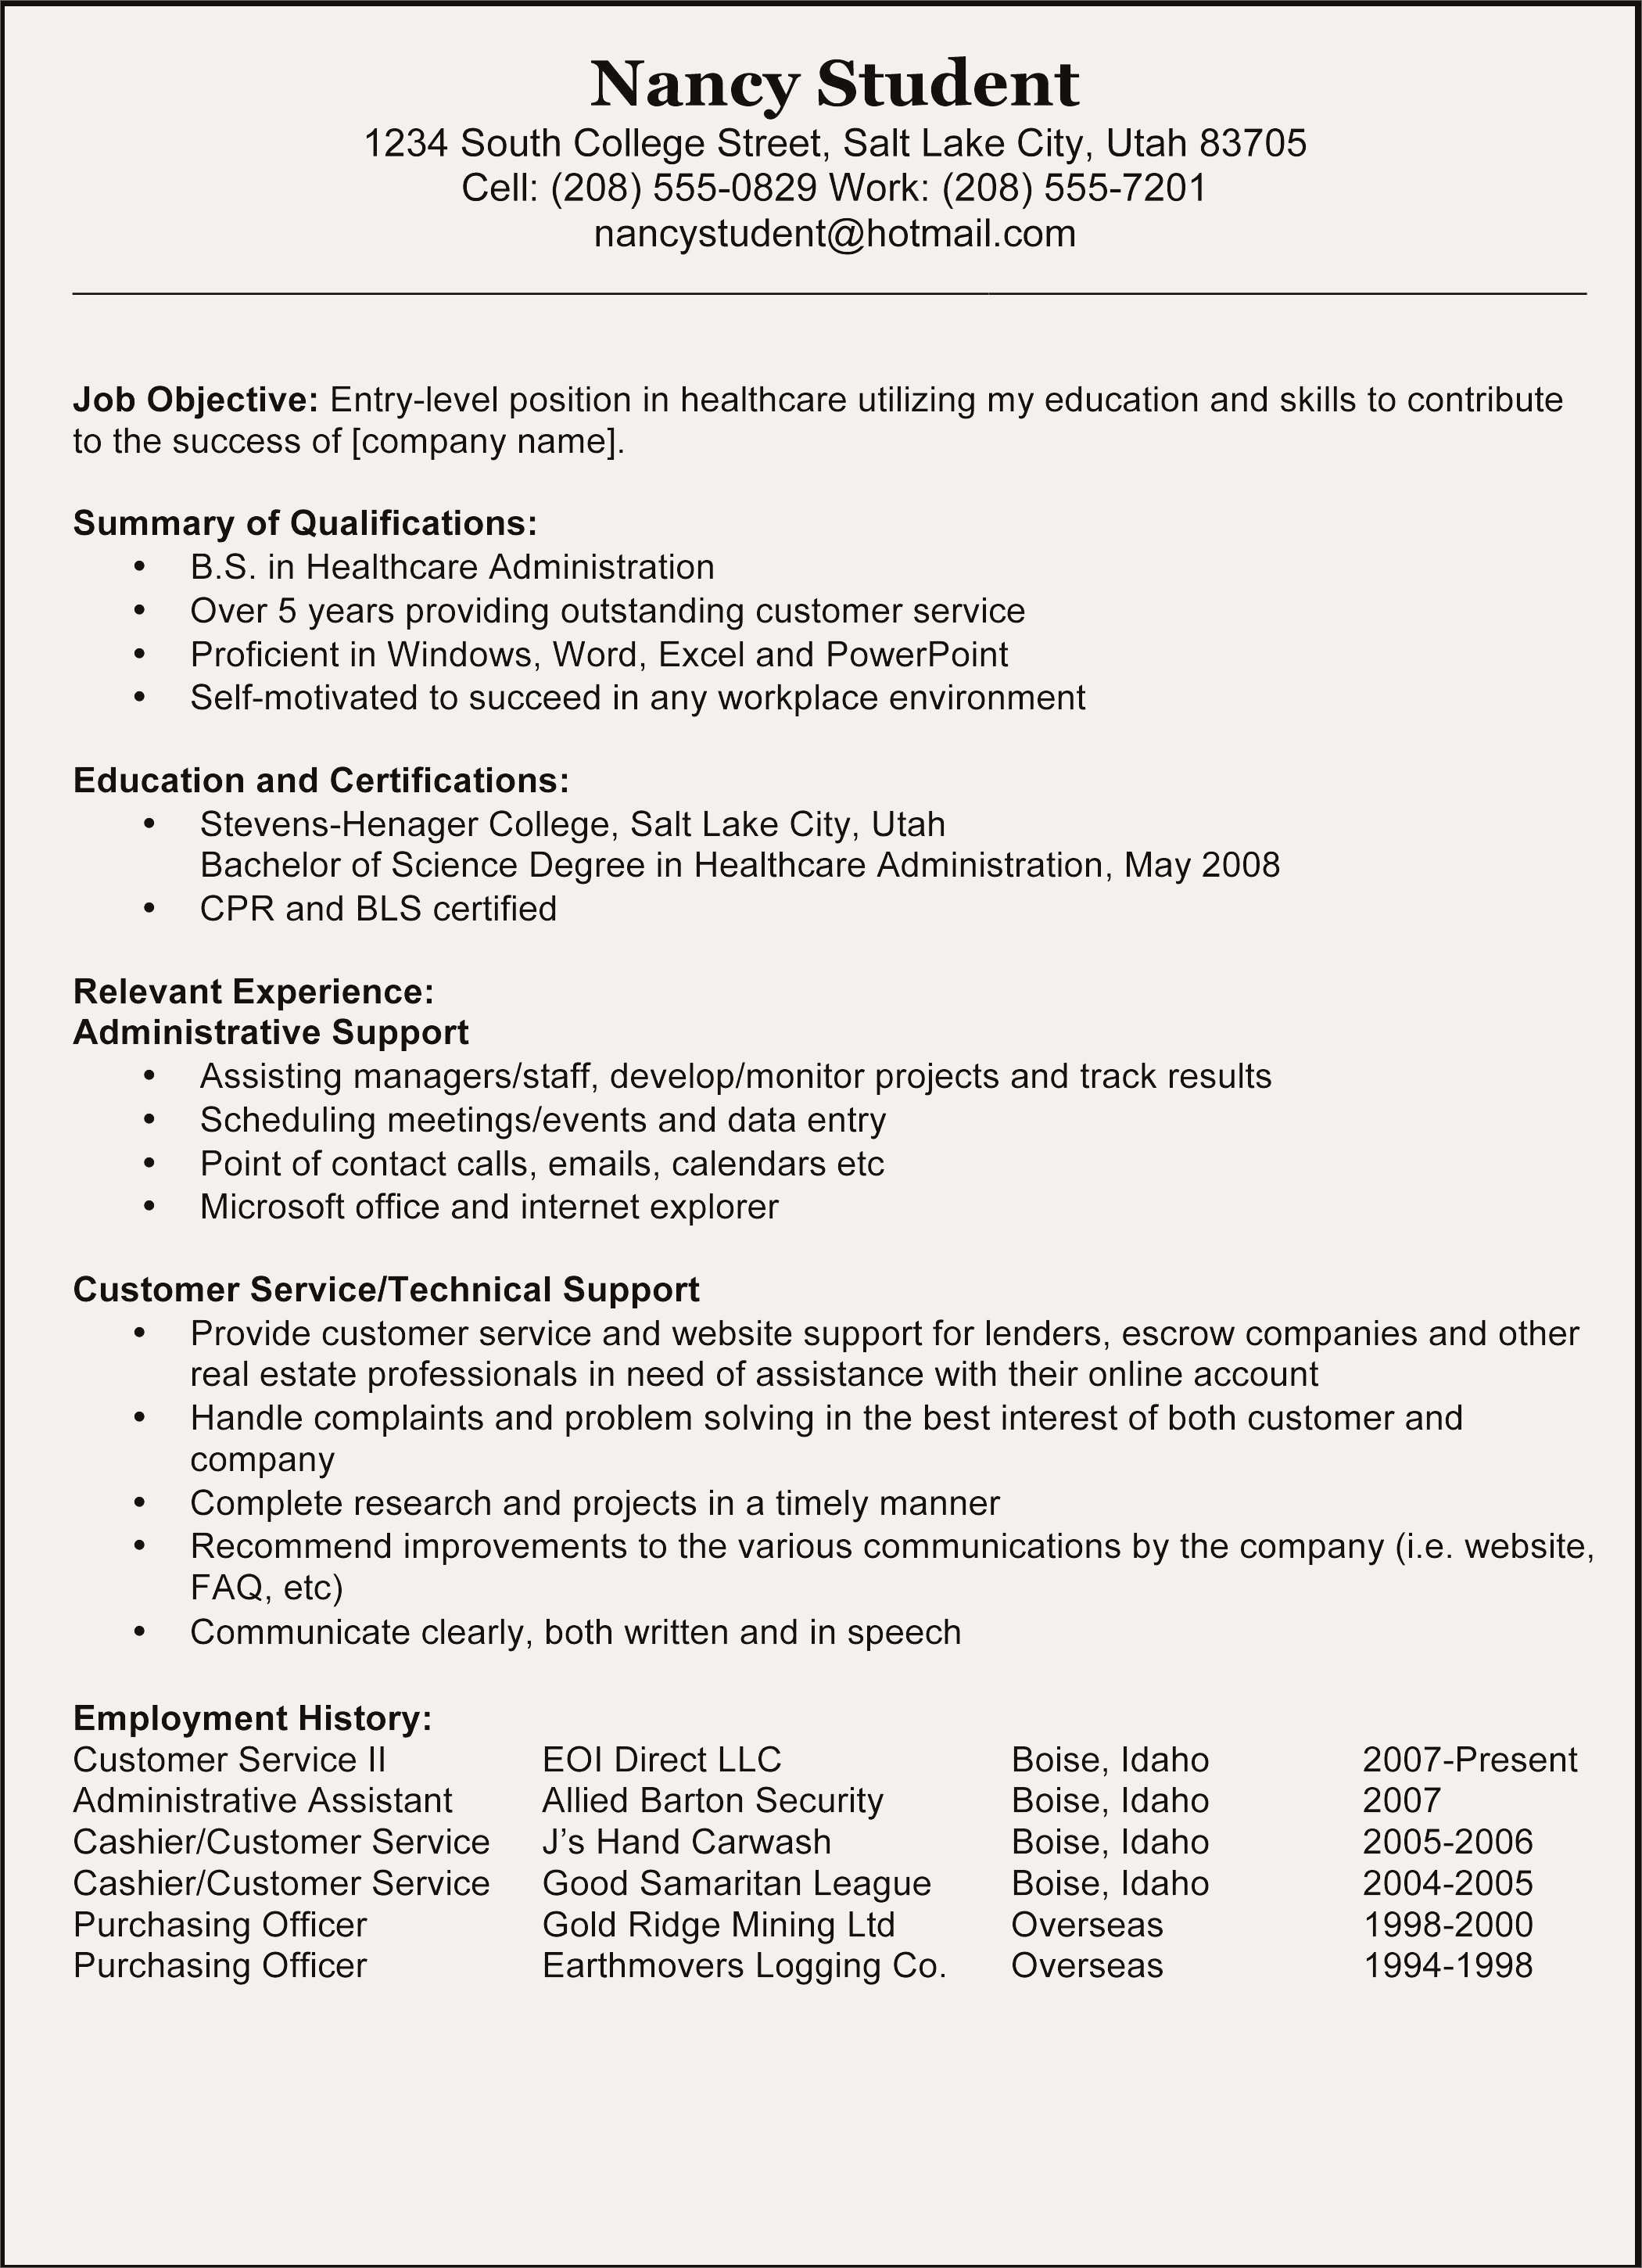 Superintendent Resume Template - Superintendent Resume Template